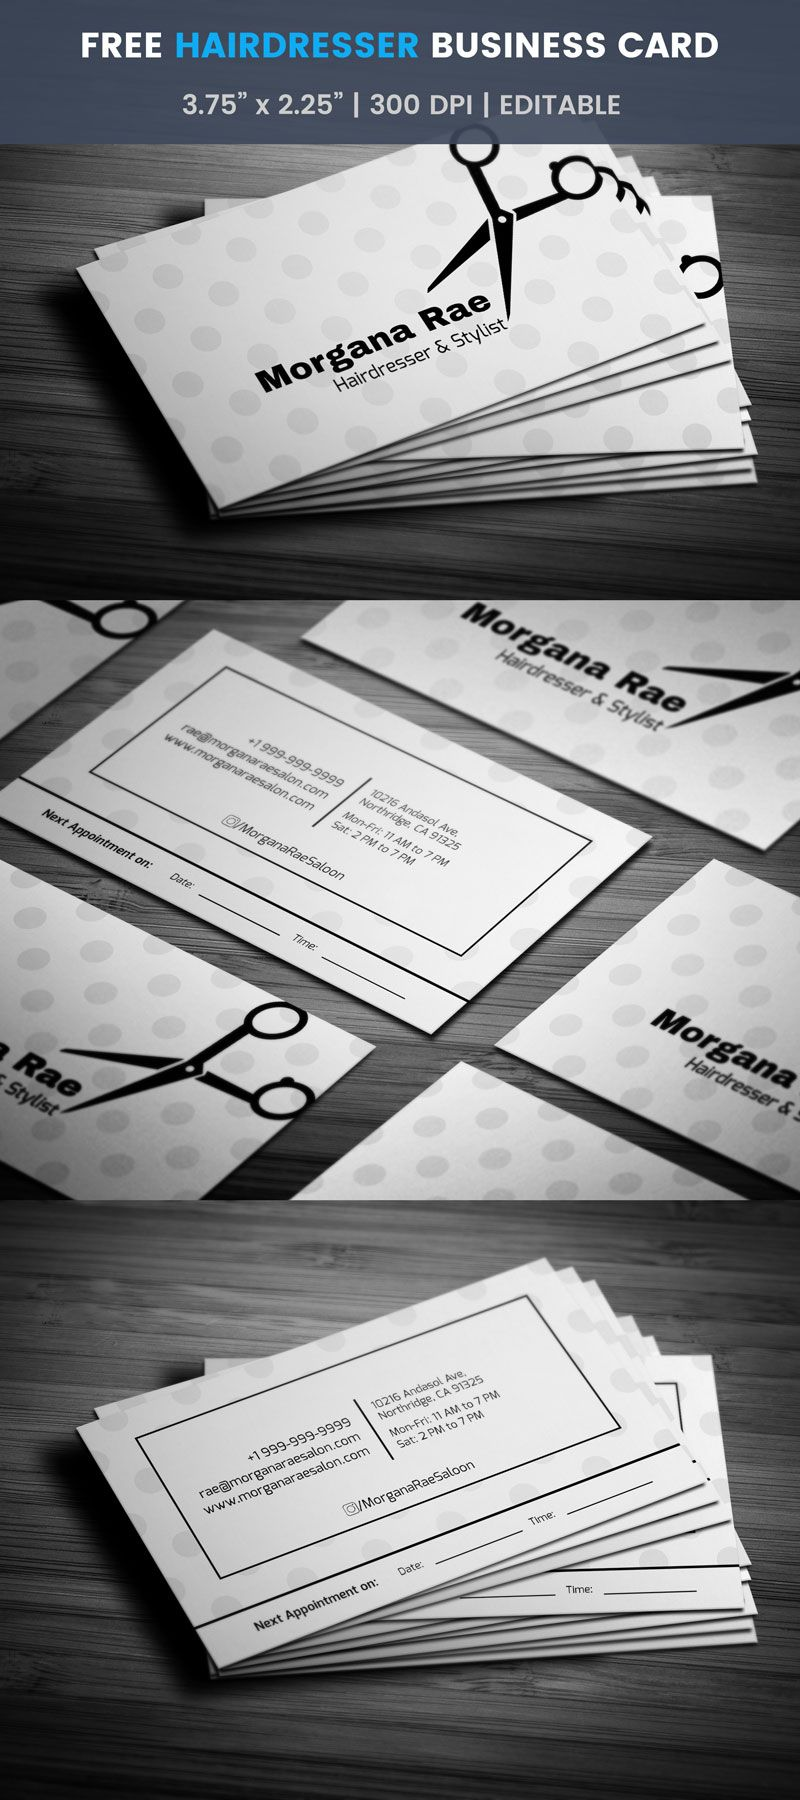 Hairdresser business card with appointment full preview free hairdresser business card with appointment full preview cheaphphosting Images